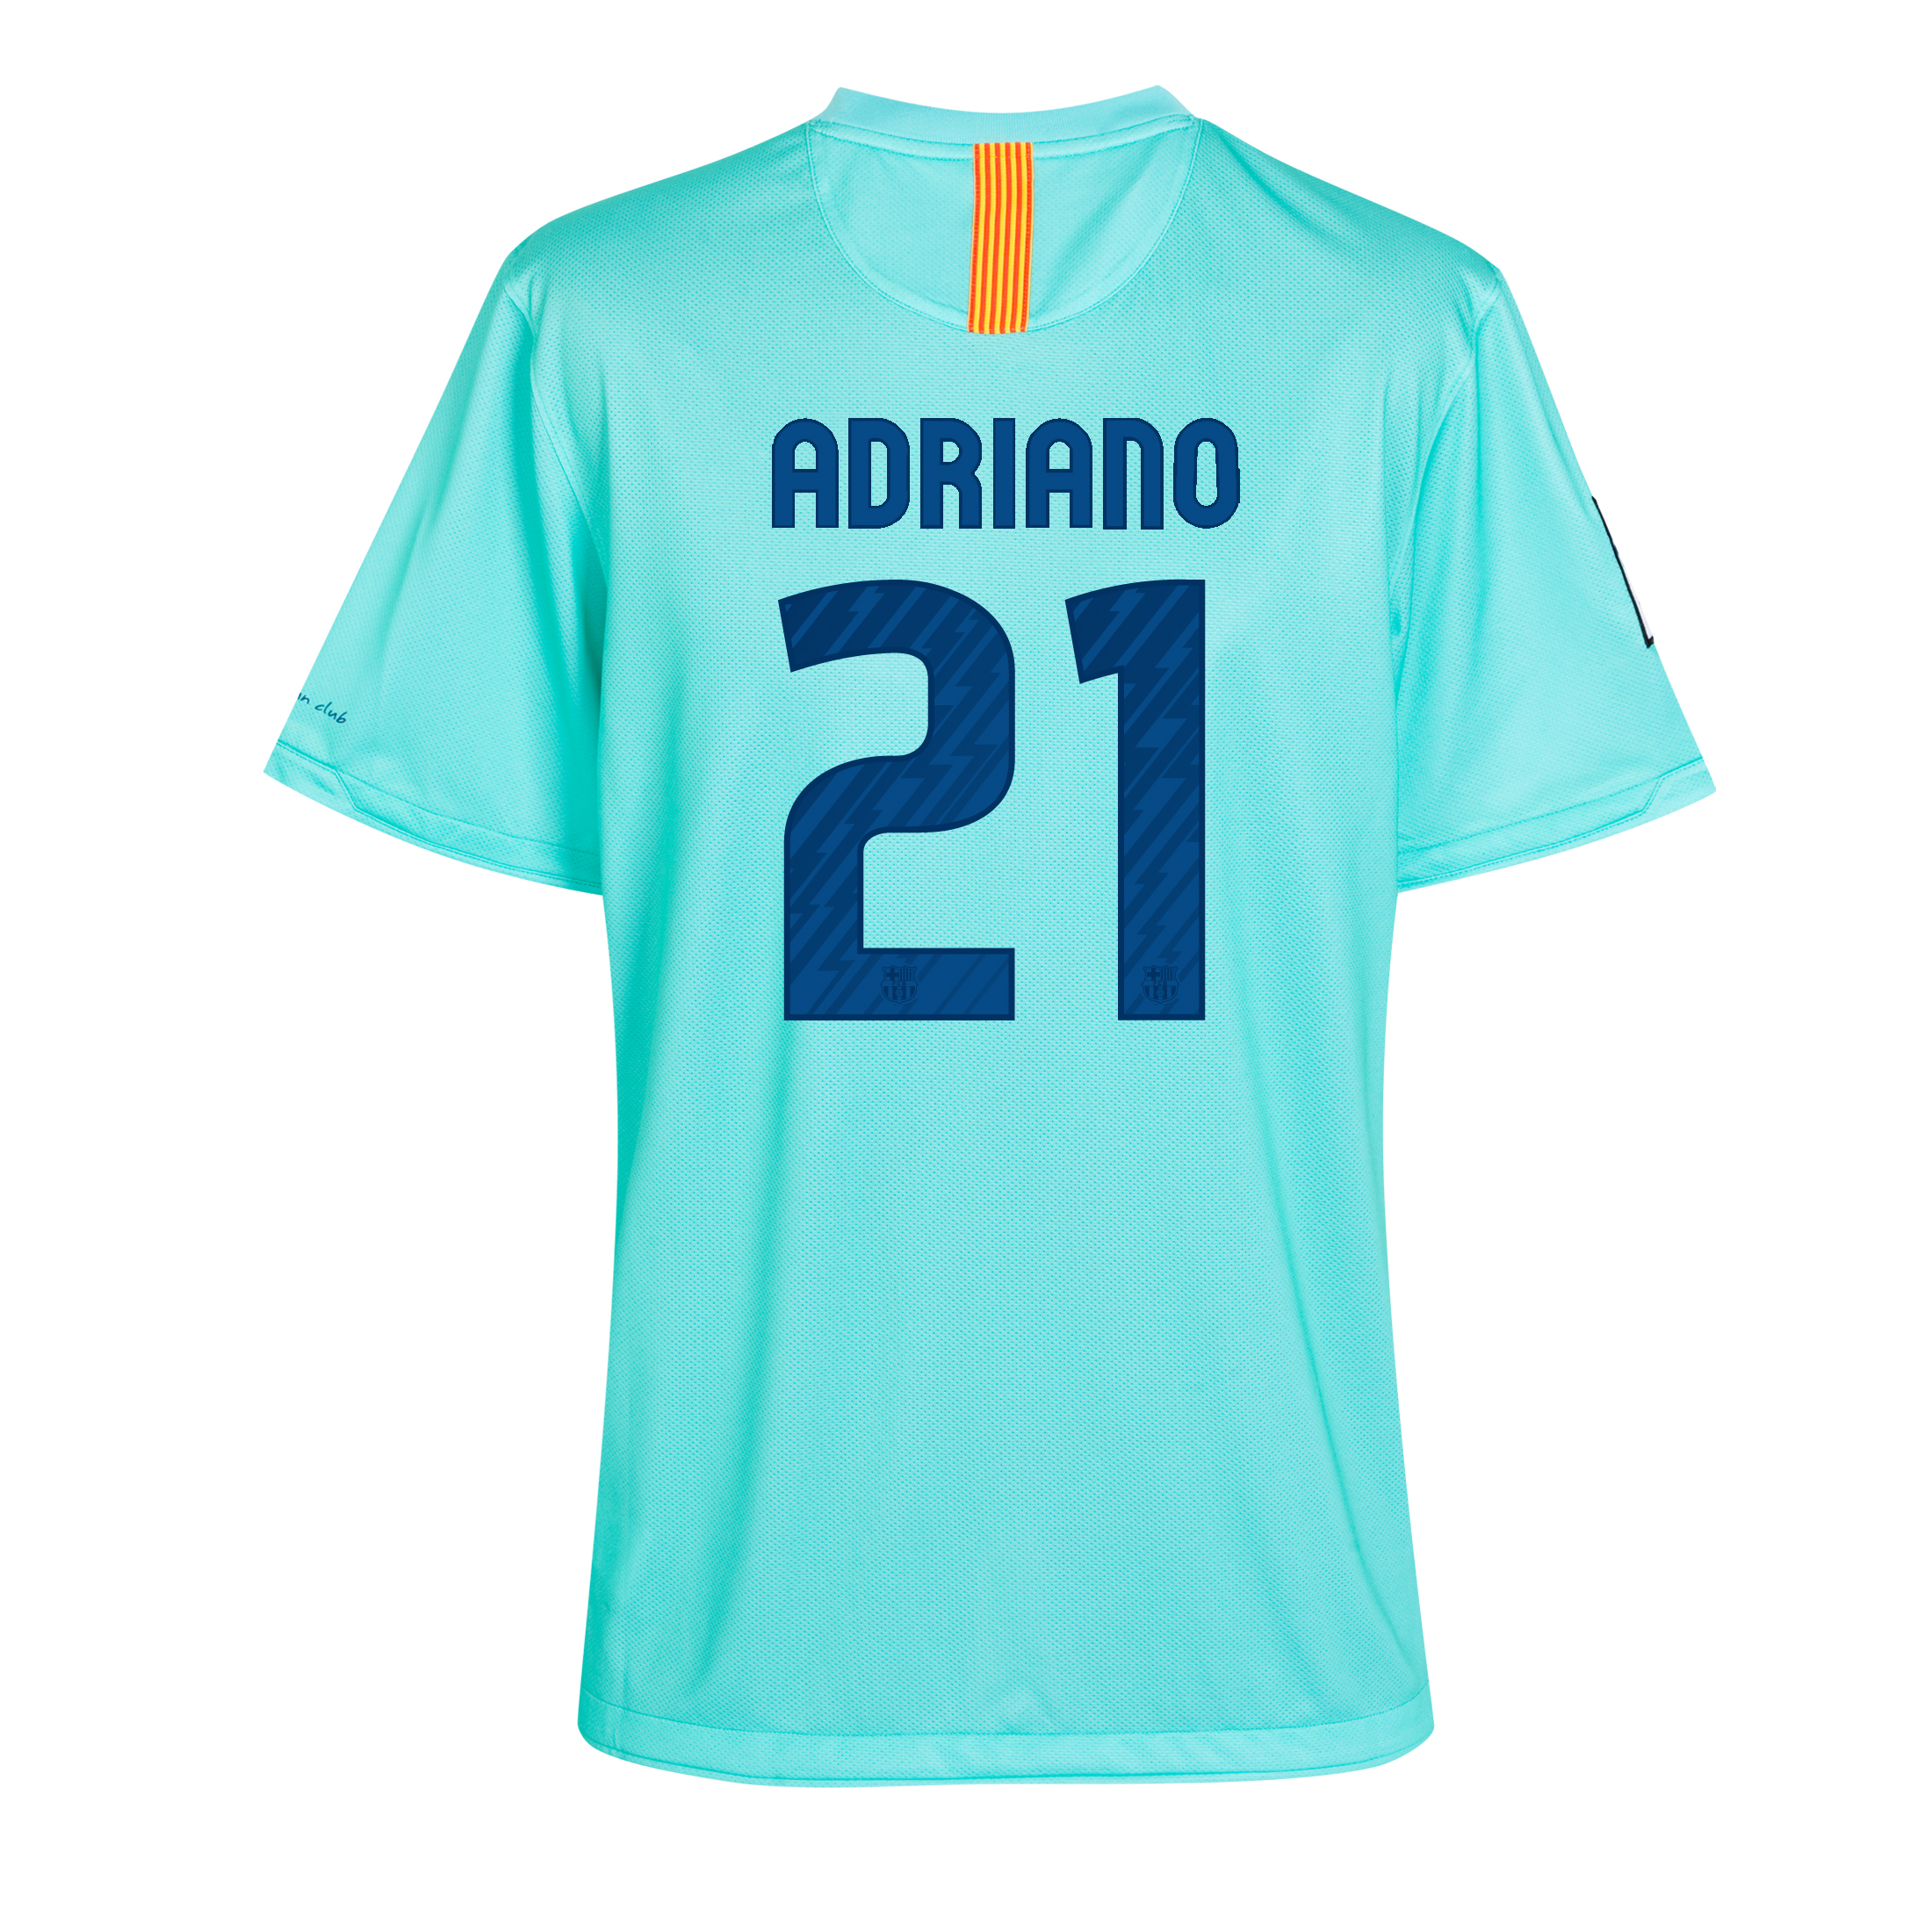 Barcelona Away Shirt 2010/11 with Adriano 21 printing - Kids